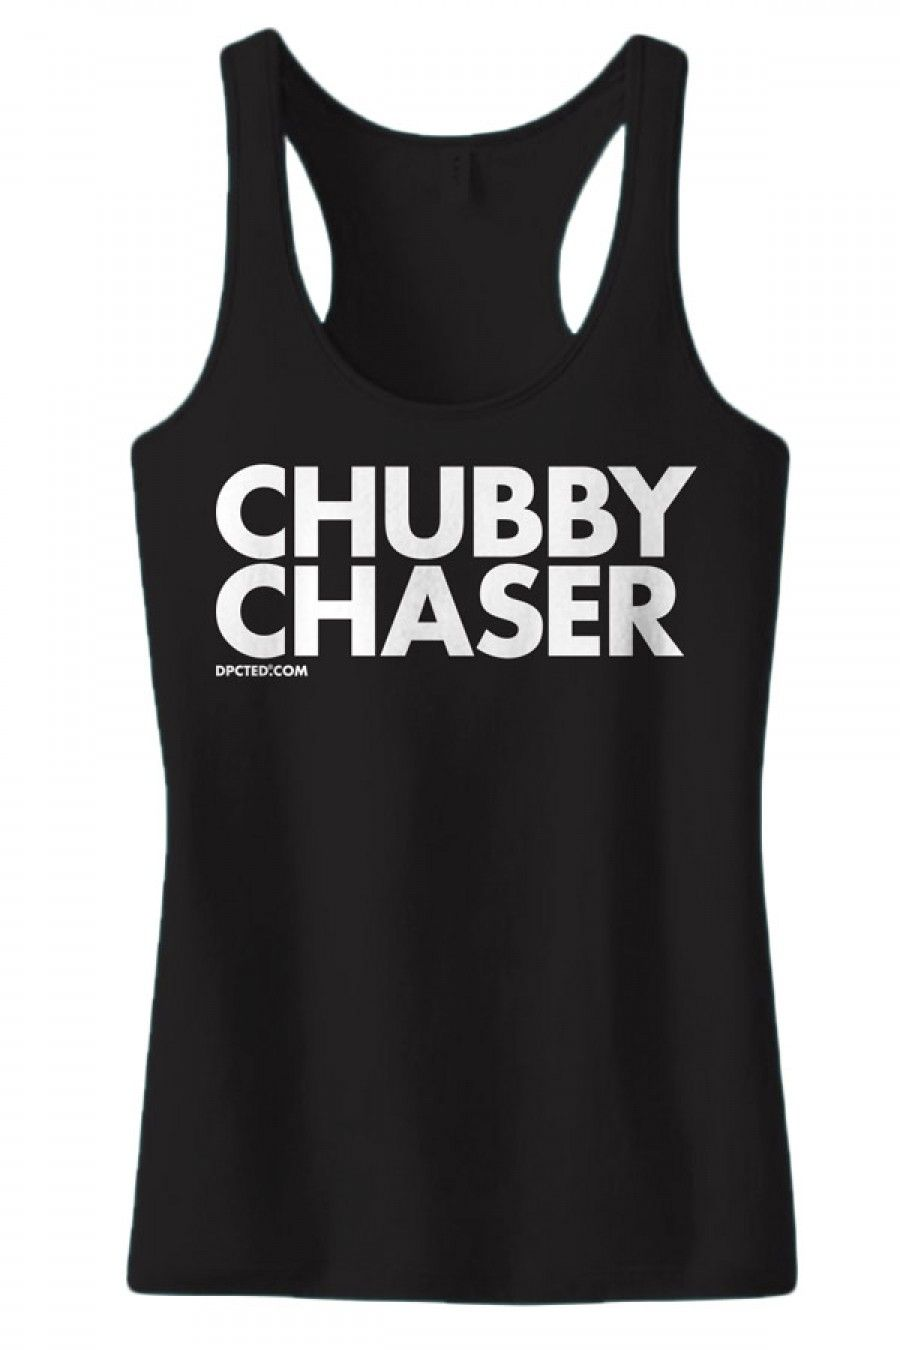 Consider, that chubby chaser black remarkable